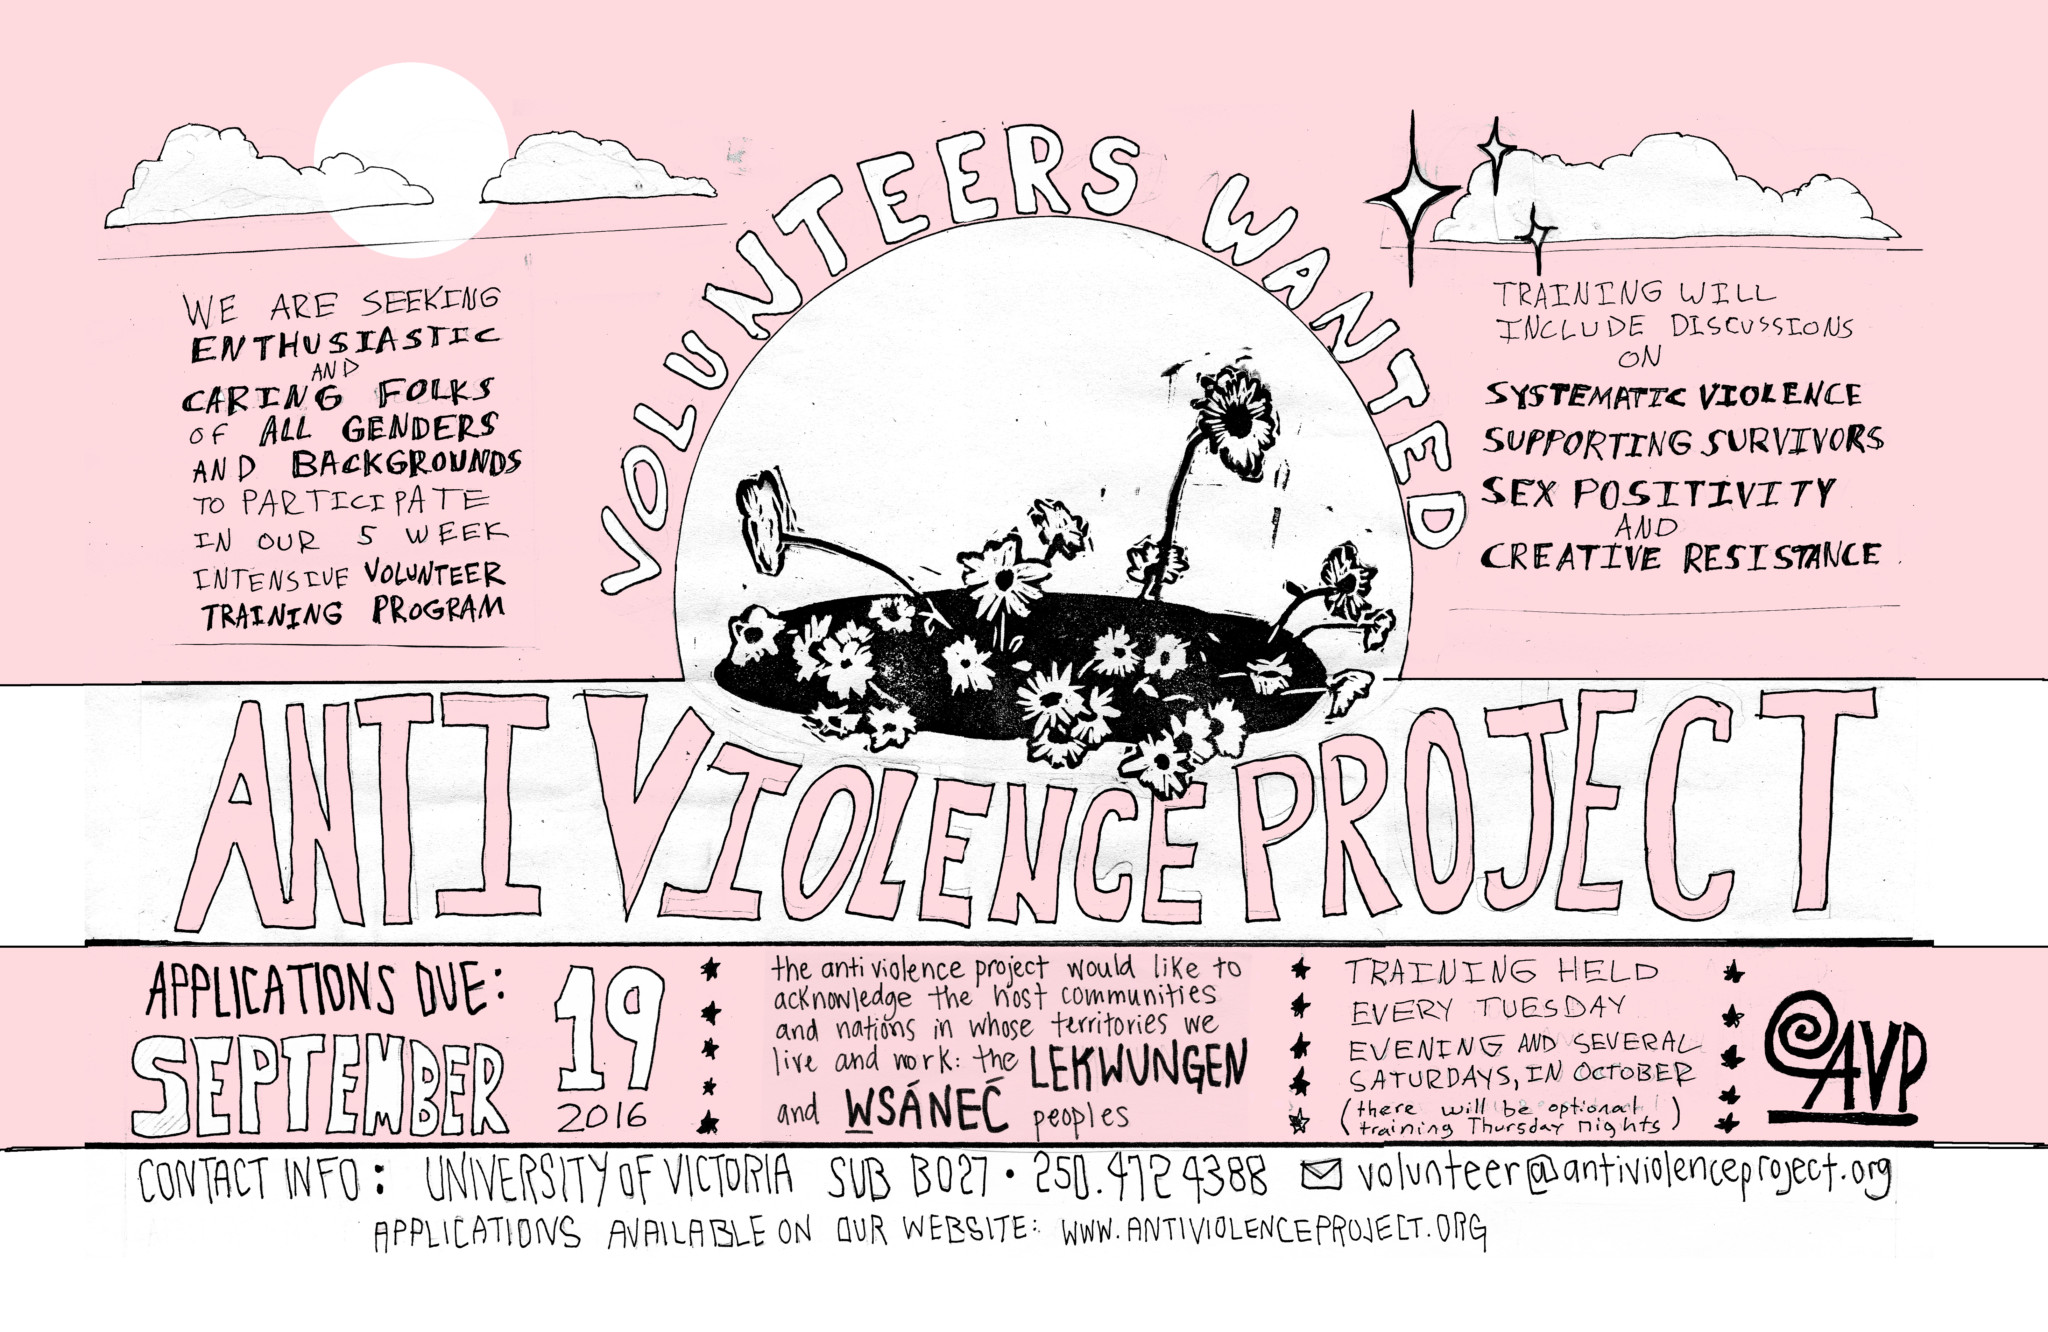 """a pink and white poster with black hand-drawn flowers in the middle. The poster reads """"We are seeking enthusiastic and caring folks of all genders and backgrounds to participate in our 5 week intensive volunteer training program. Training will include discussion on systemic violence, supporting survivors, sex positivity, and creative resistance. Applications Due Sept 19, 2016."""